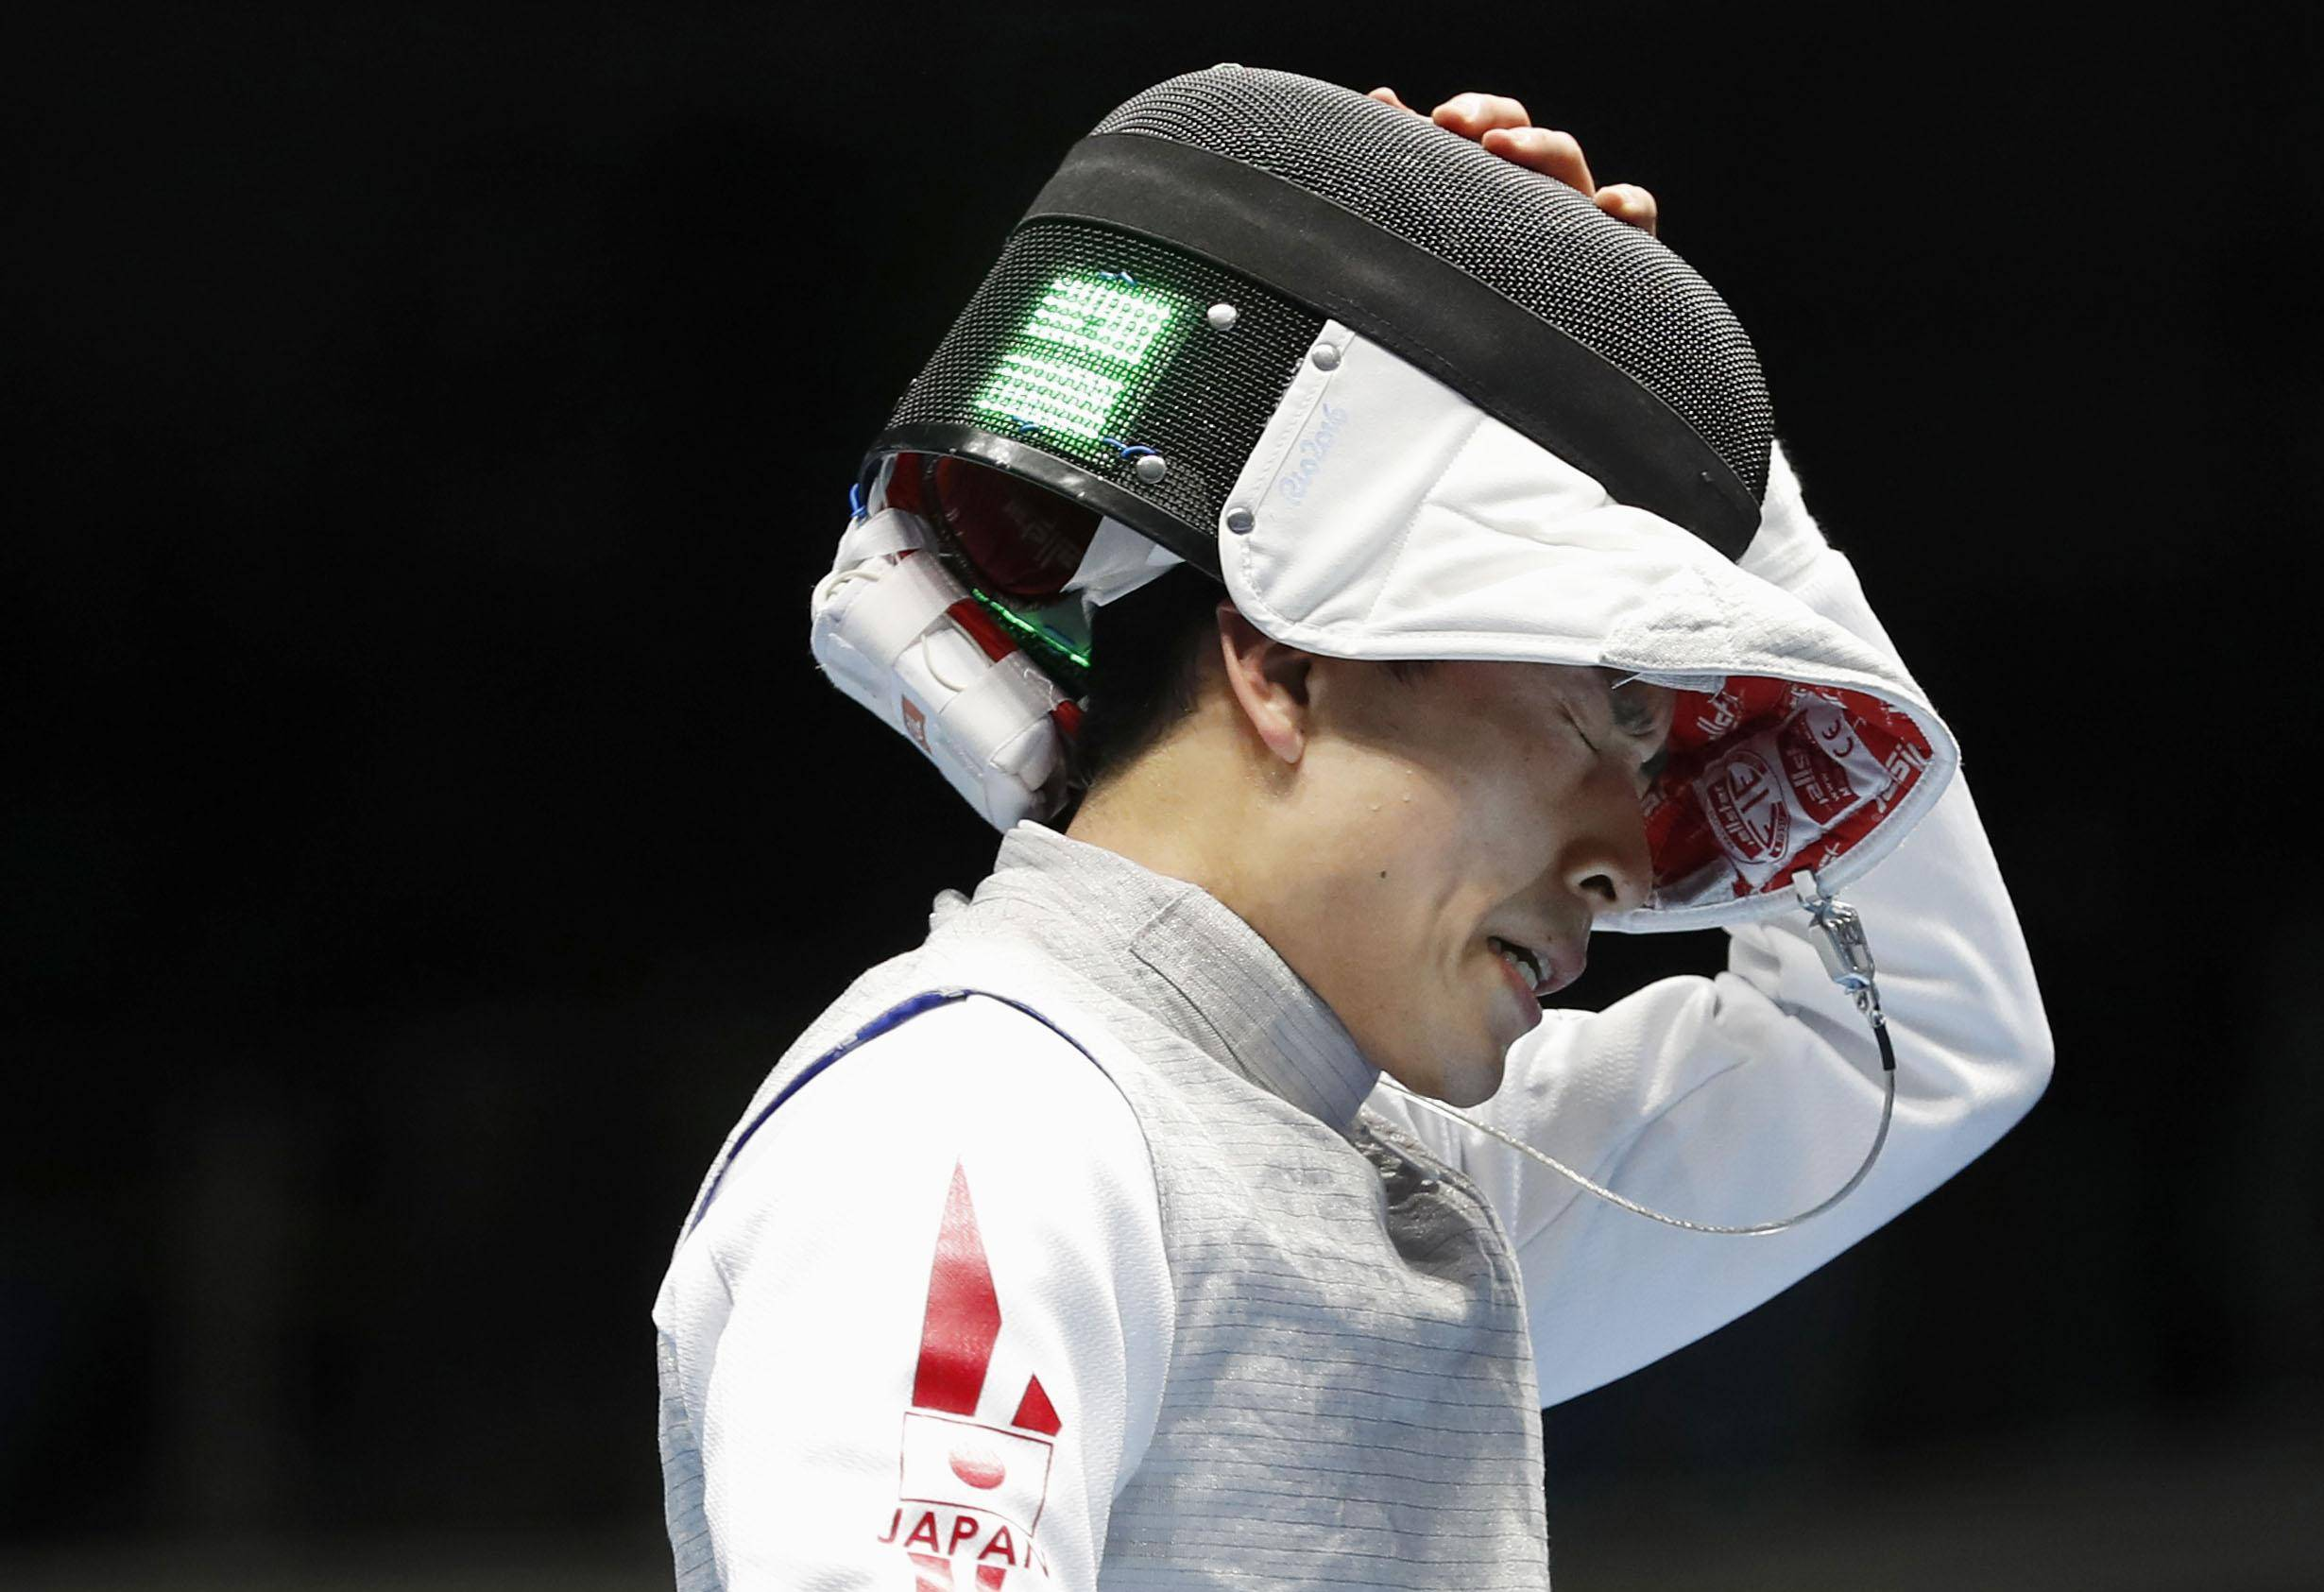 Yuki Ota reacts after losing his preliminary match of the men's fencing individual competition on Sunday at the 2016 Rio de Janeiro Olympics. Ota later announced his retirement. | KYODO